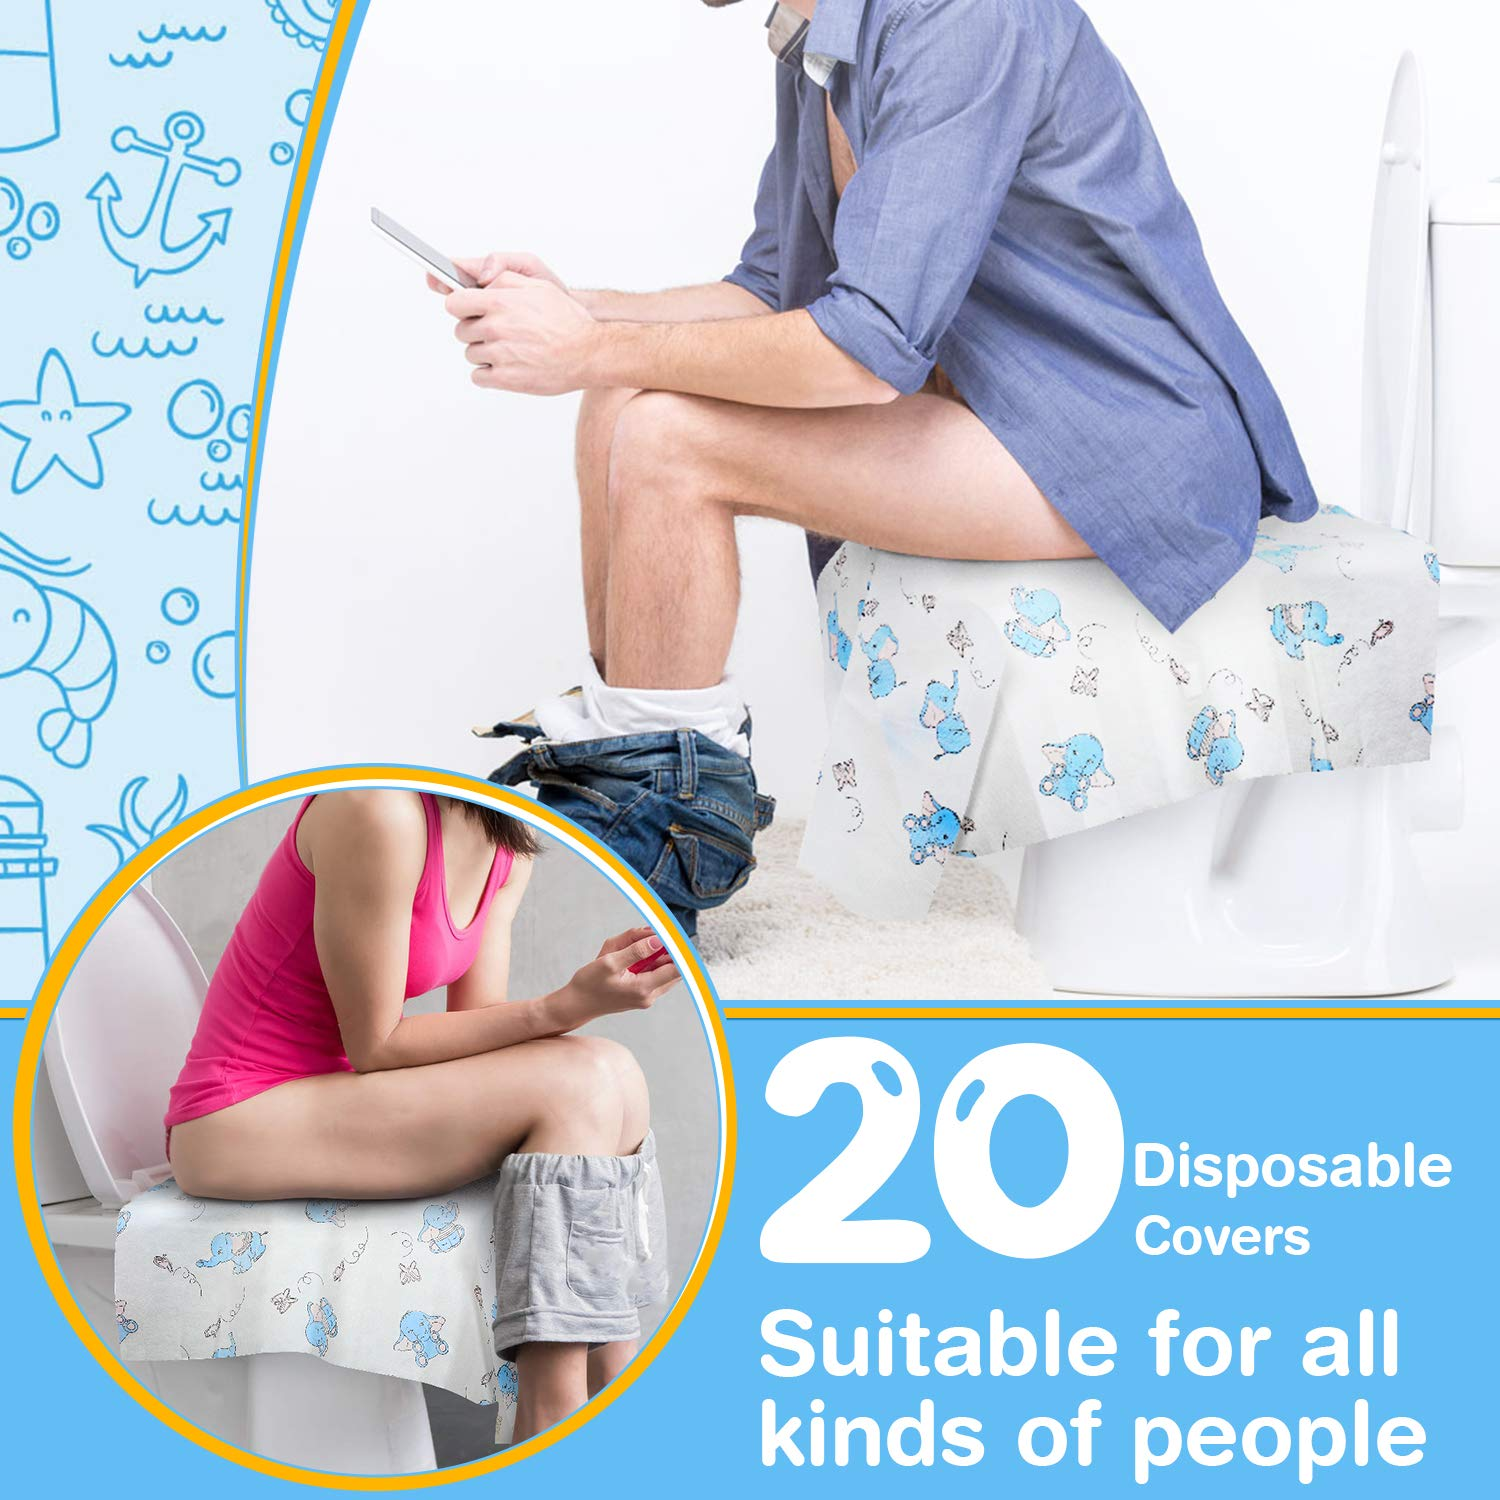 Disposable Toilet Seat Covers Extra Large 20 Packs Perfect for Adults and Kids Potty Training with Individually Wrapped Home Travel Use New Wave